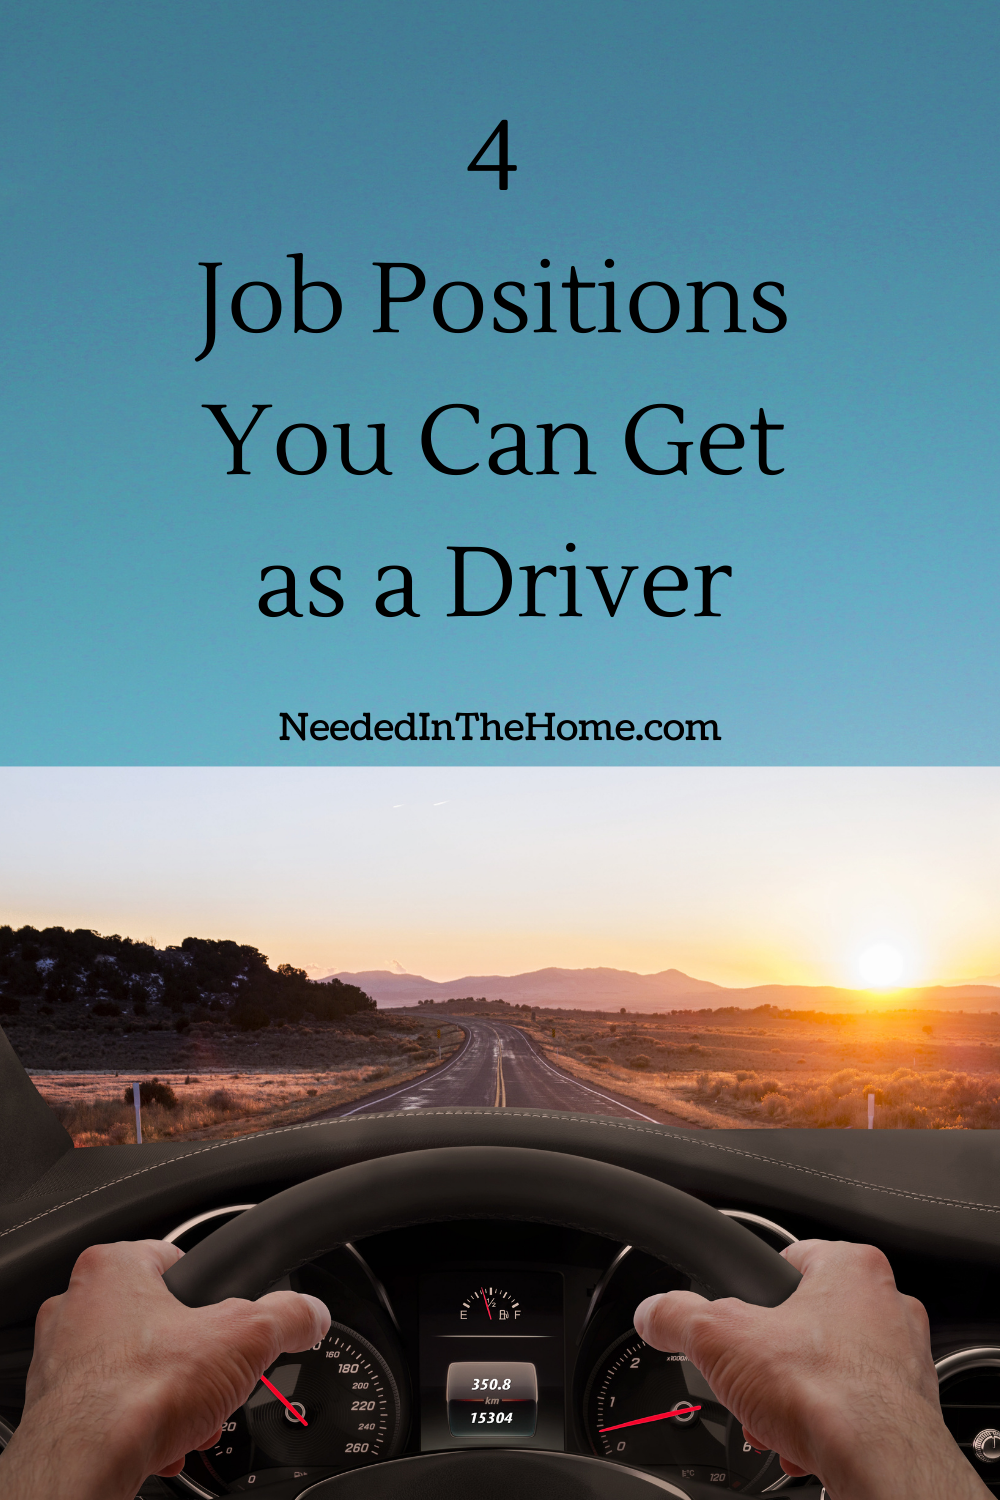 pinterest-pin-description 4 job positions you can get as a driver hands on steering wheel driving in sunrise neededinthehome